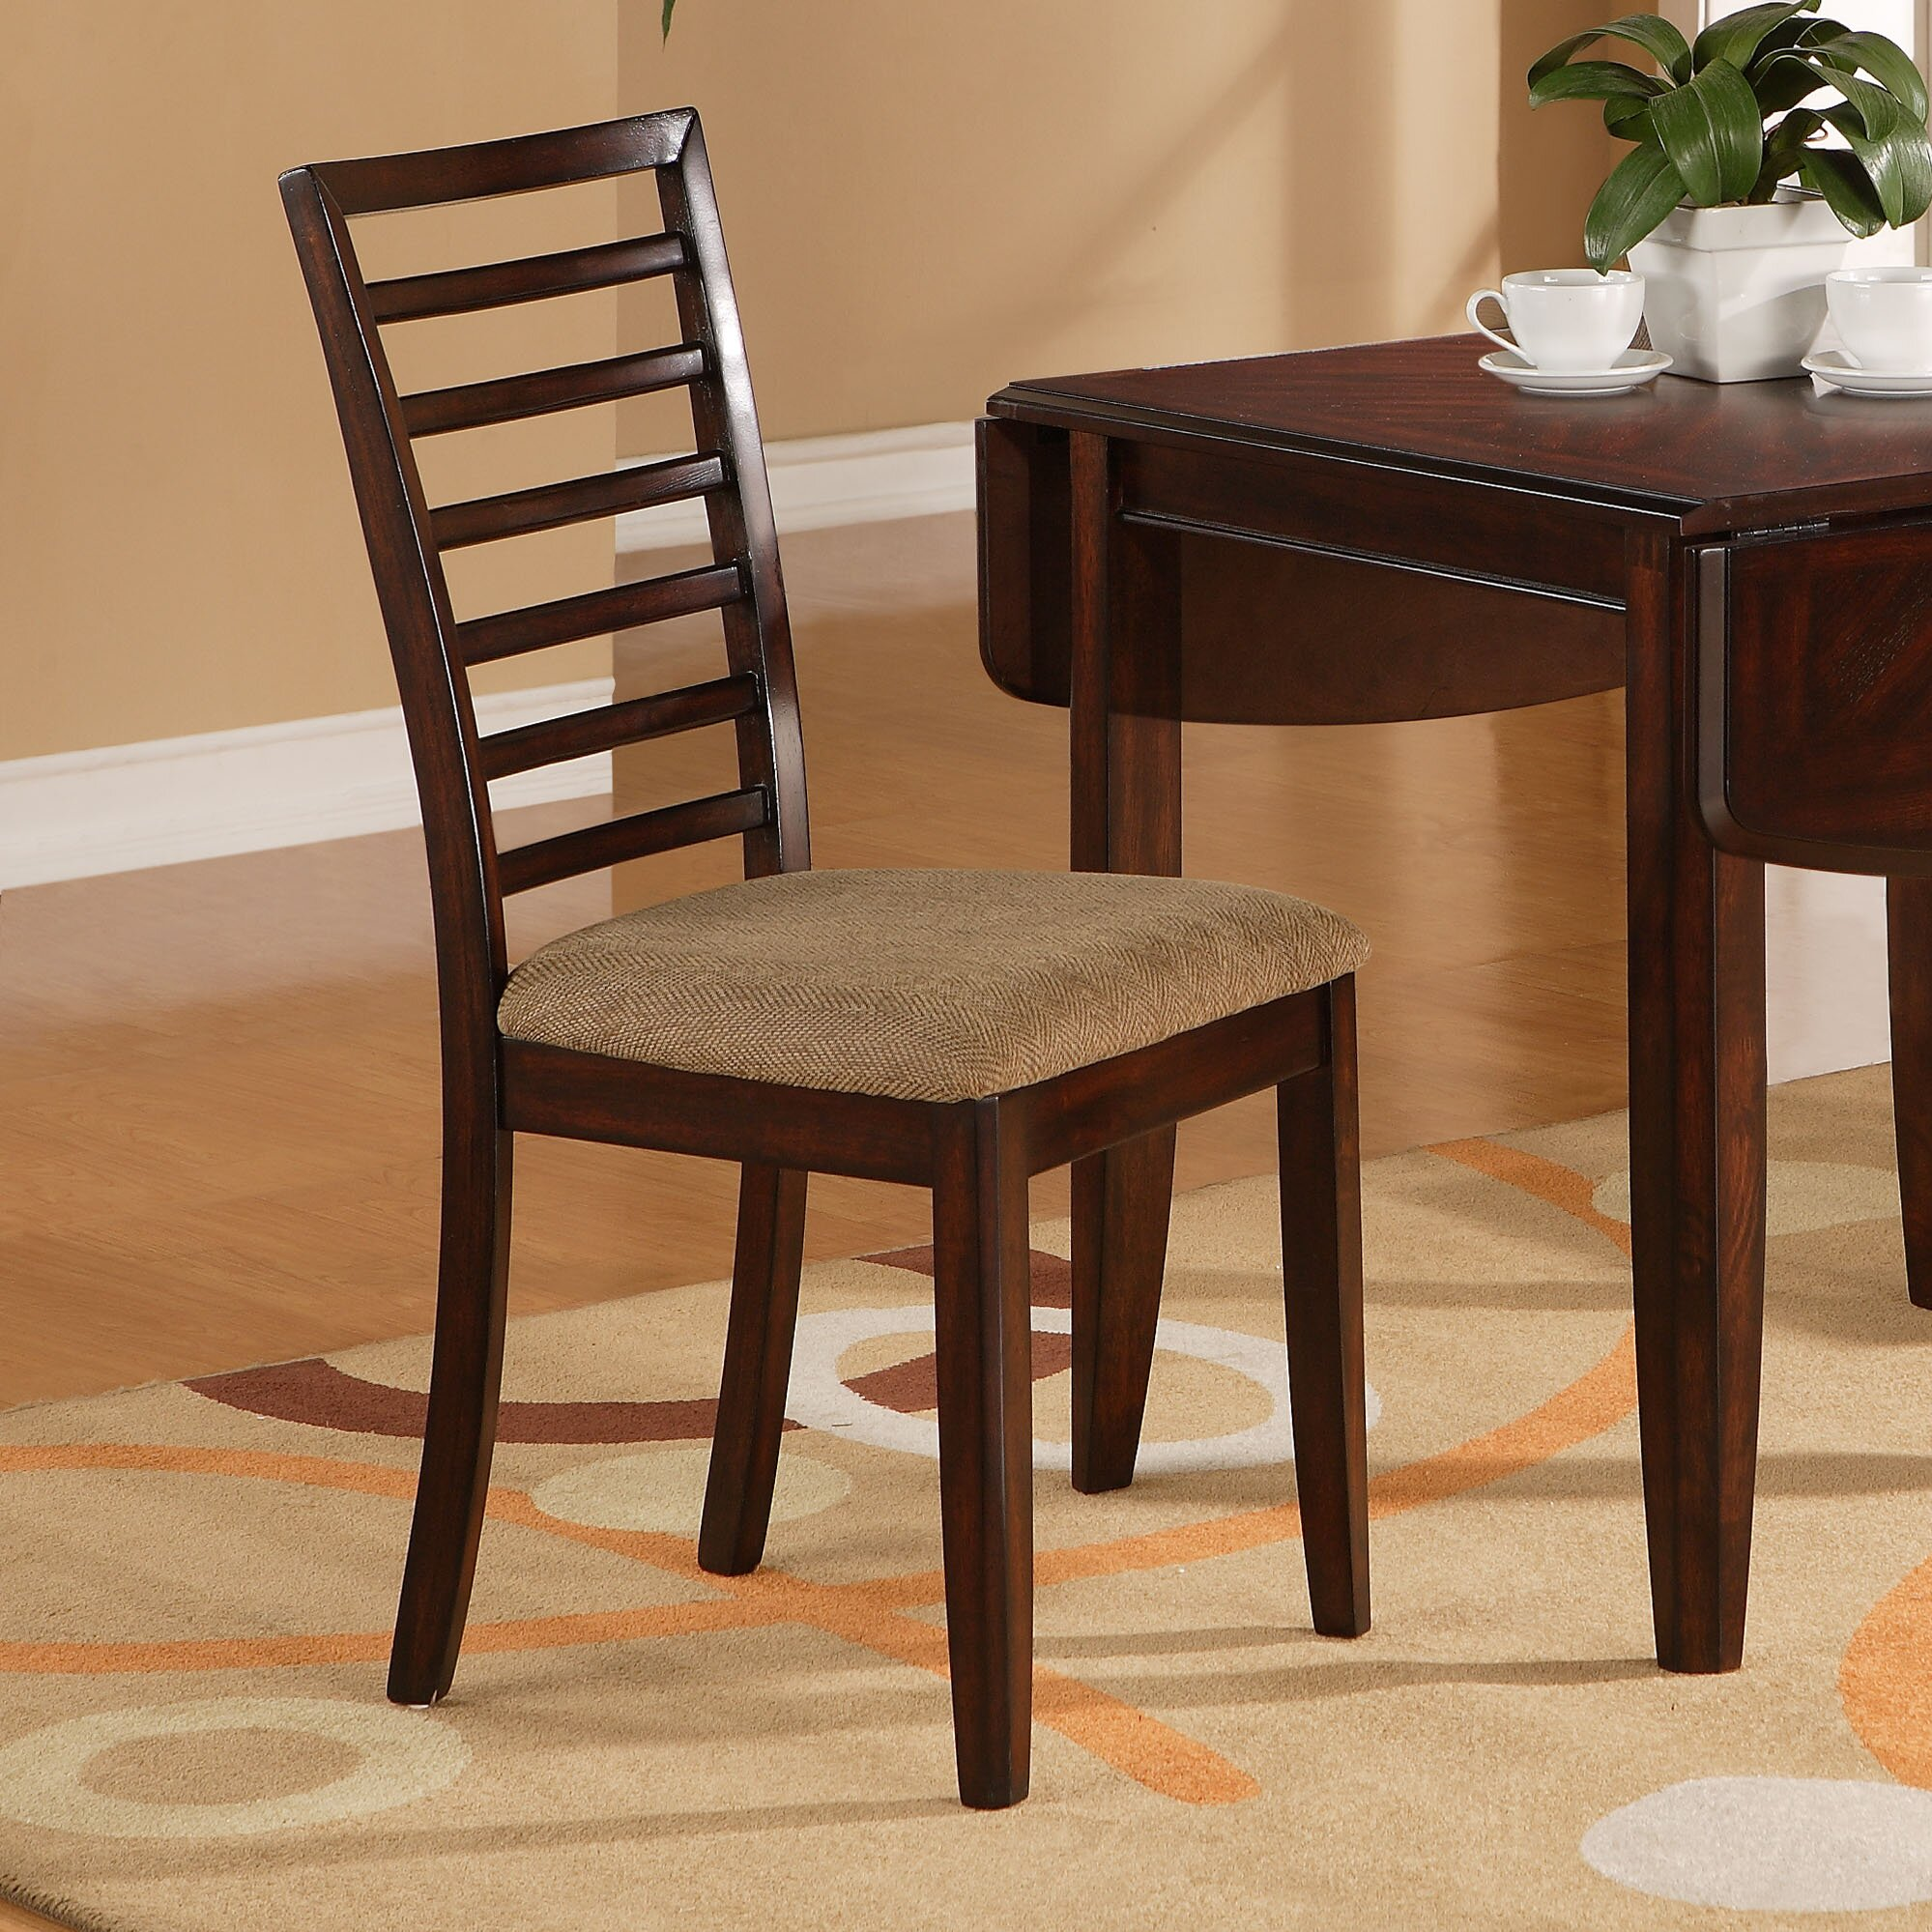 Wildon Home 174 Extendable Dining Table amp Reviews Wayfair : Extendable Dining Table 1237 3650L from www.wayfair.com size 1999 x 1999 jpeg 691kB